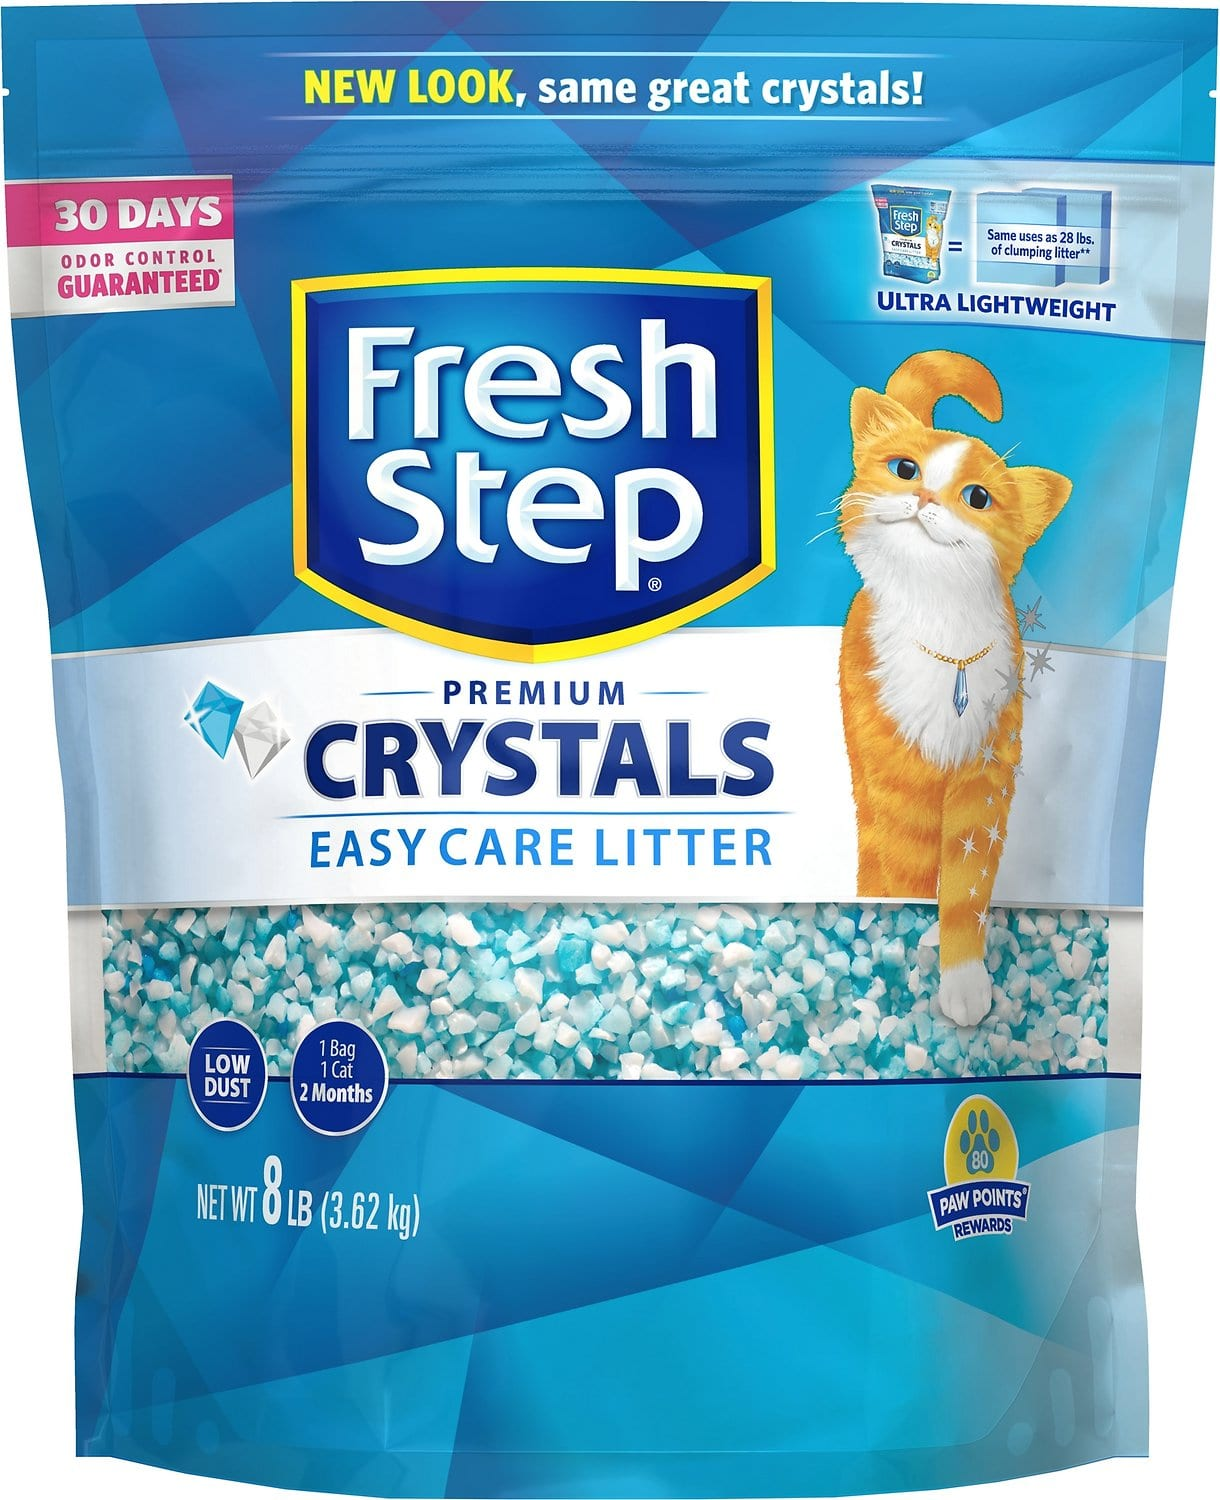 50% off Fresh Step Crystals Cat Litter, 8 lb bag + another 50% on first Autoship $3.2